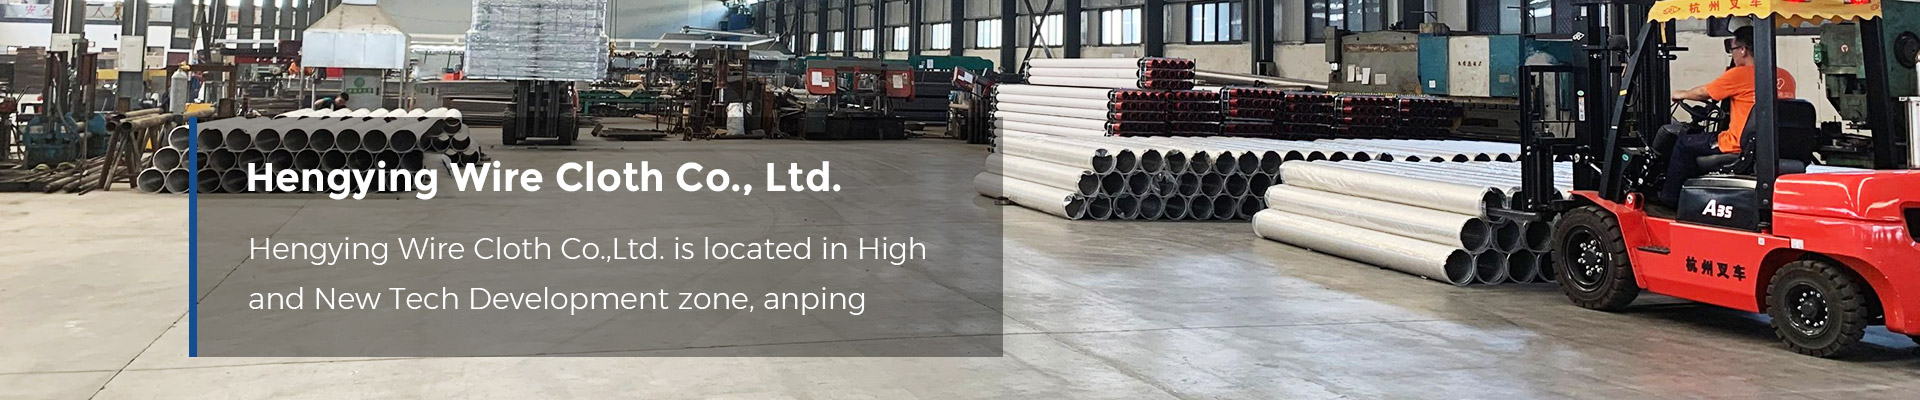 Hengying Wire Cloth Co., Ltd.